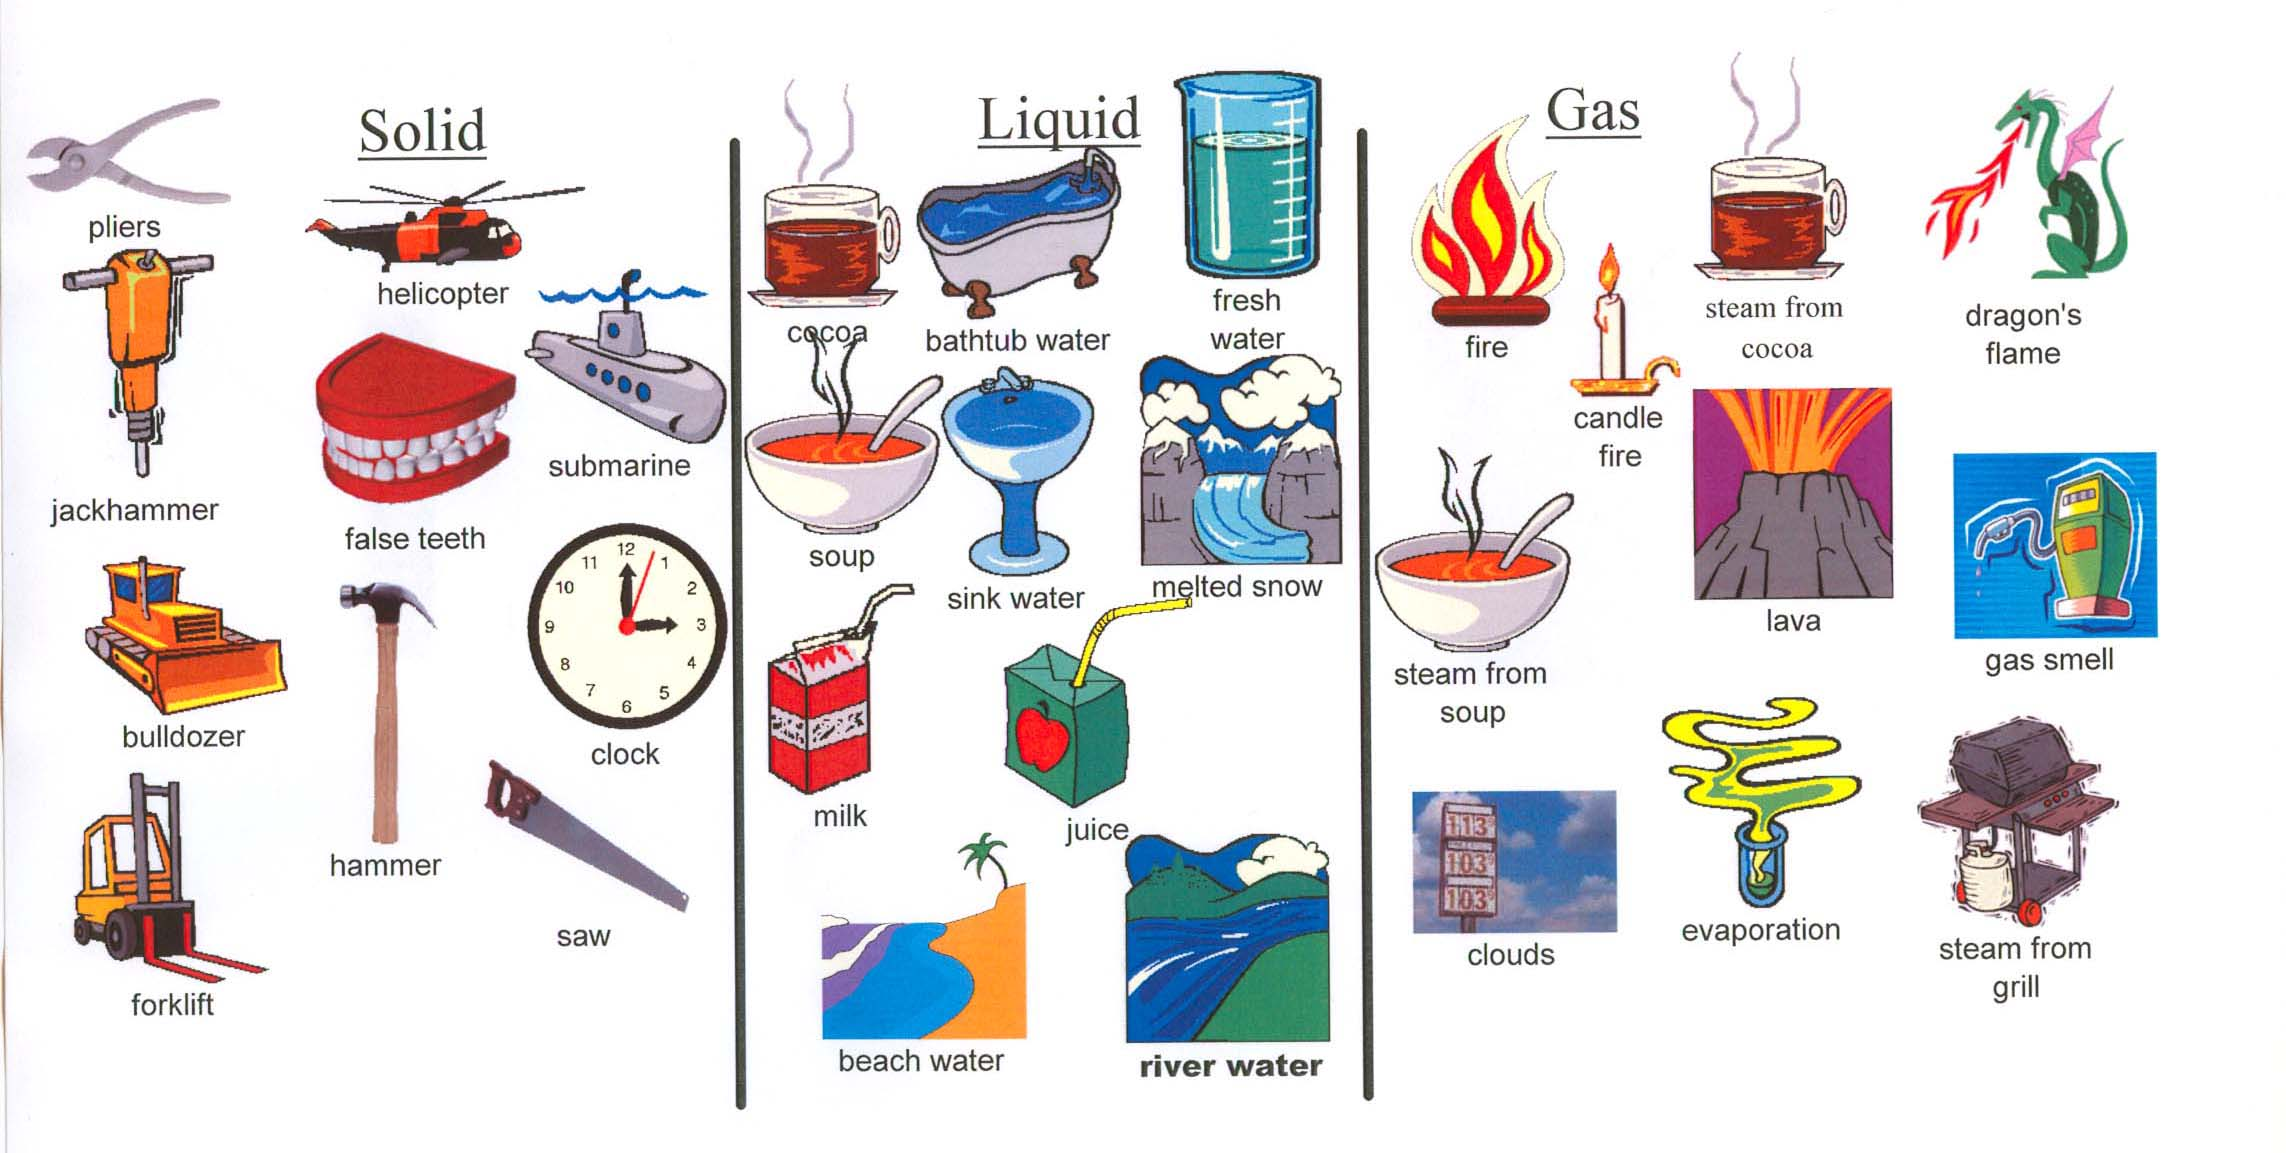 1000+ images about Solid Liquid Gas on Pinterest.